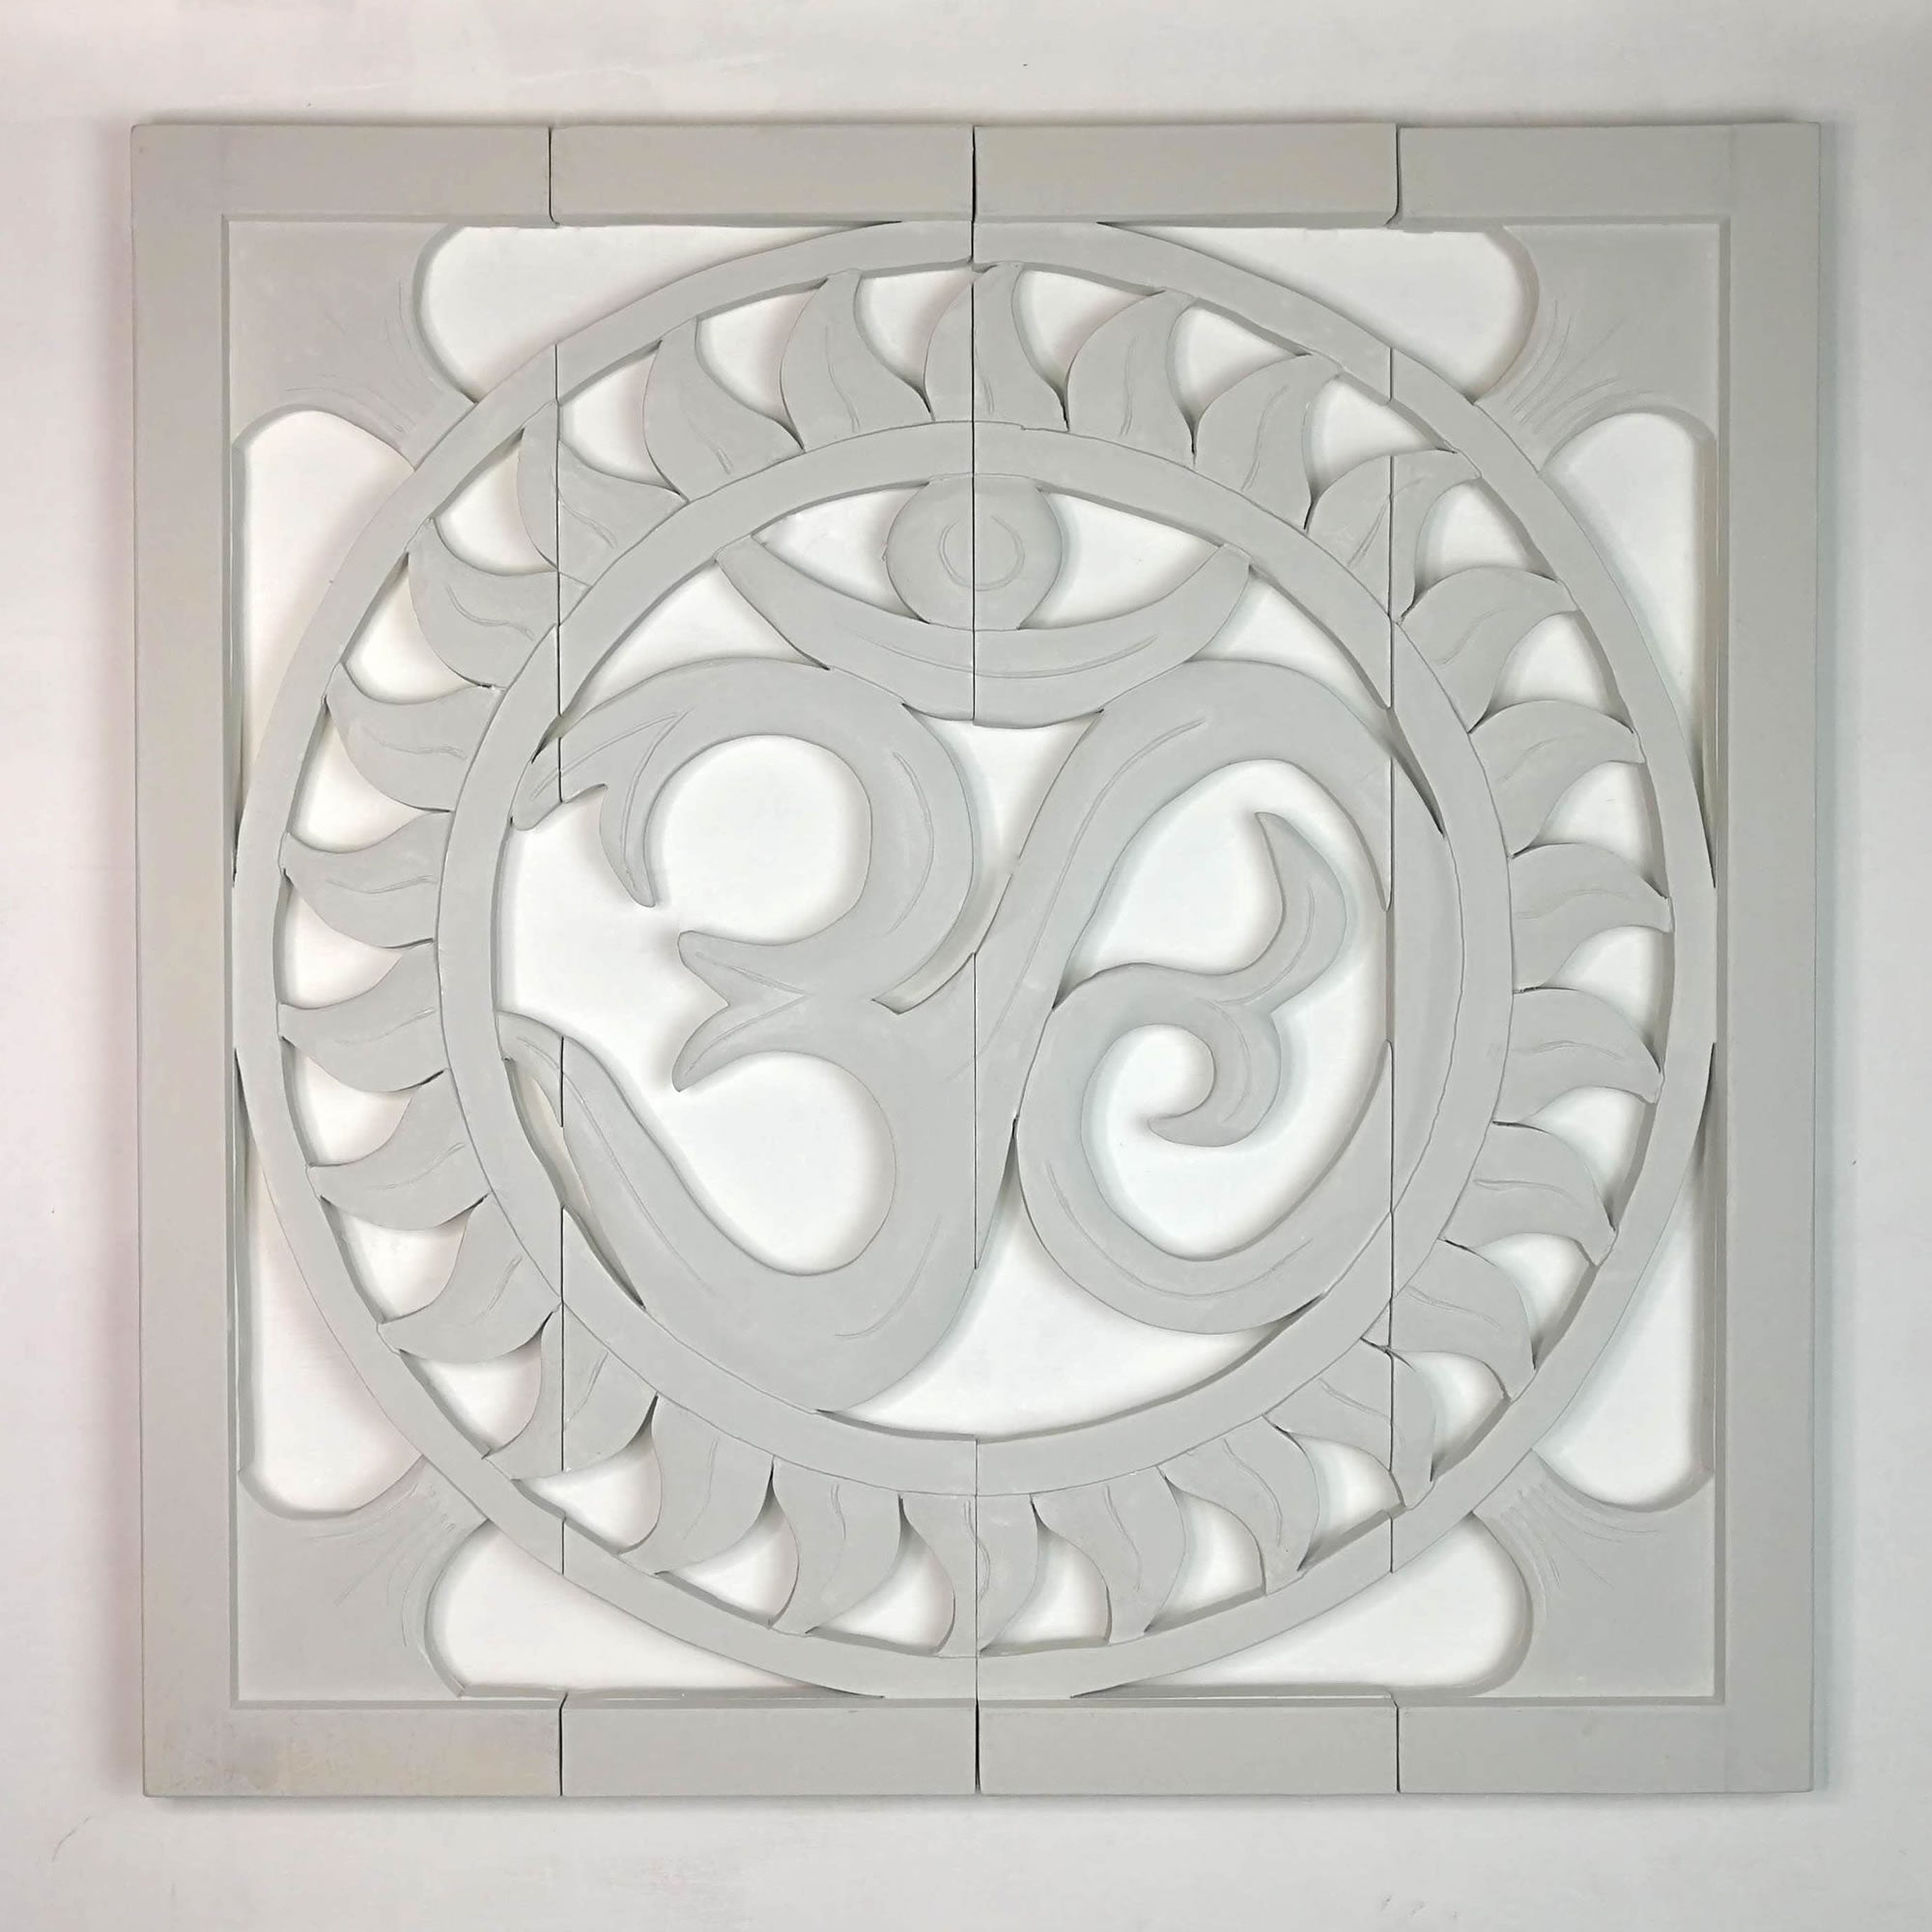 Carved Wooden Wall Art - Large Headboard Decorative Om Mantra Yoga Panel